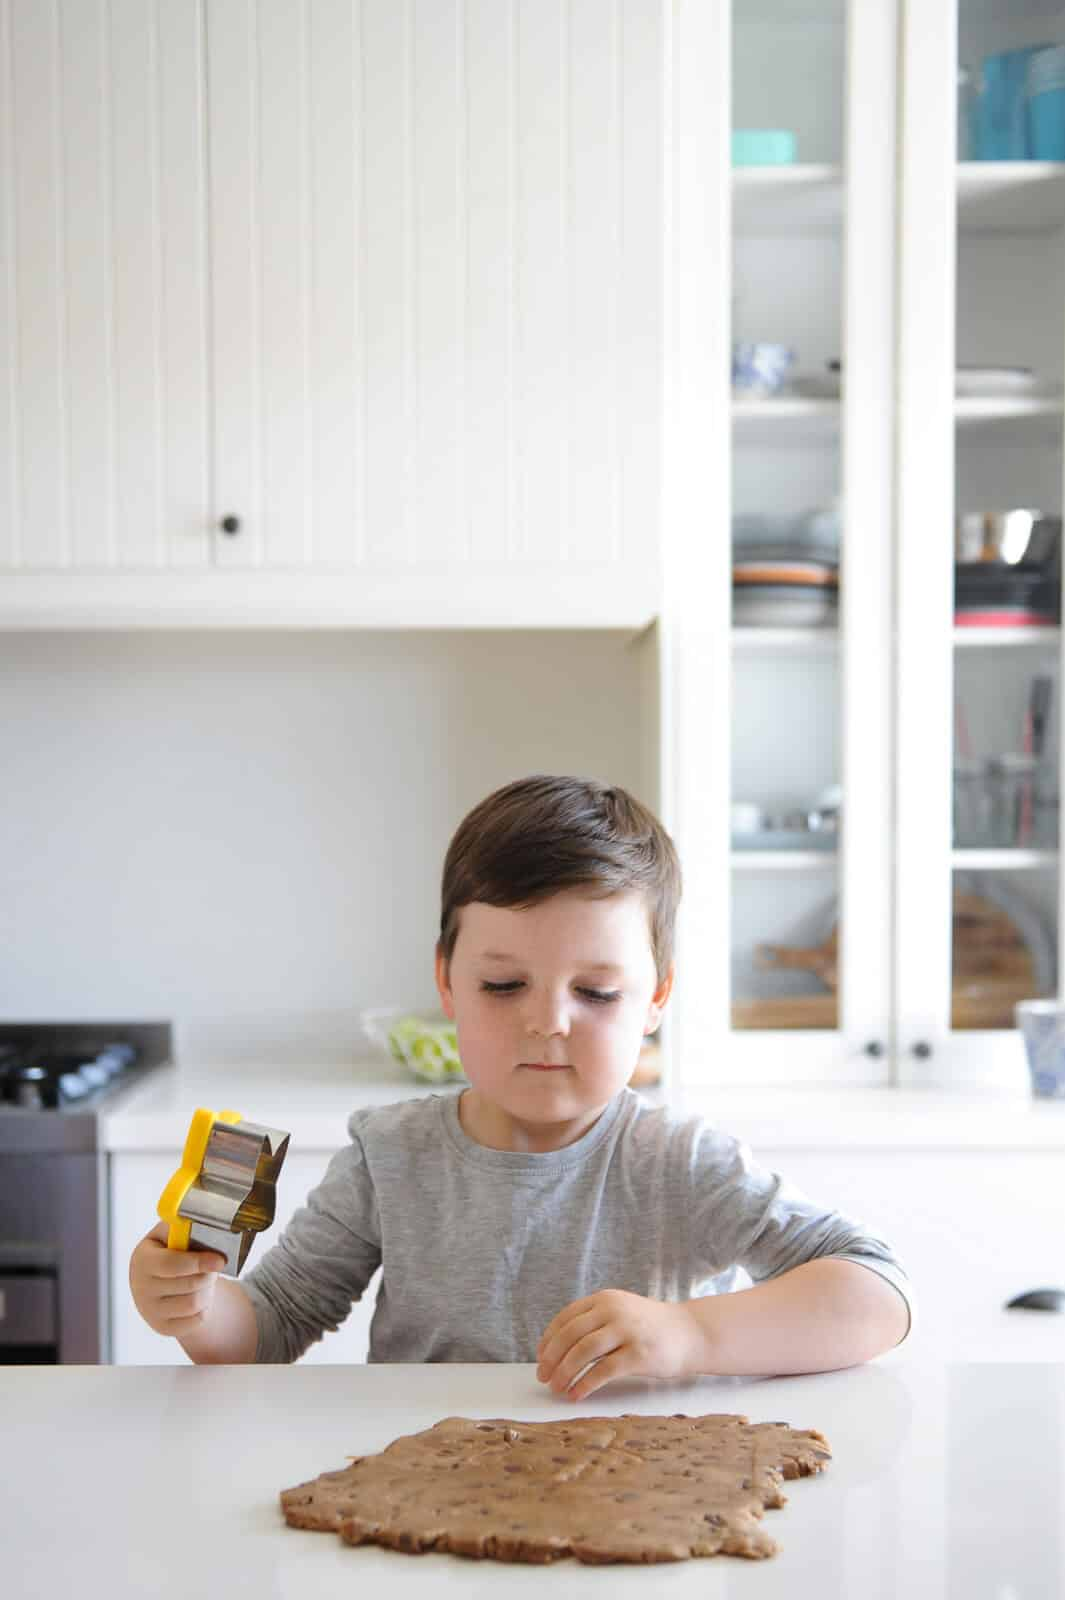 a young boy cooking at a kitchen bench